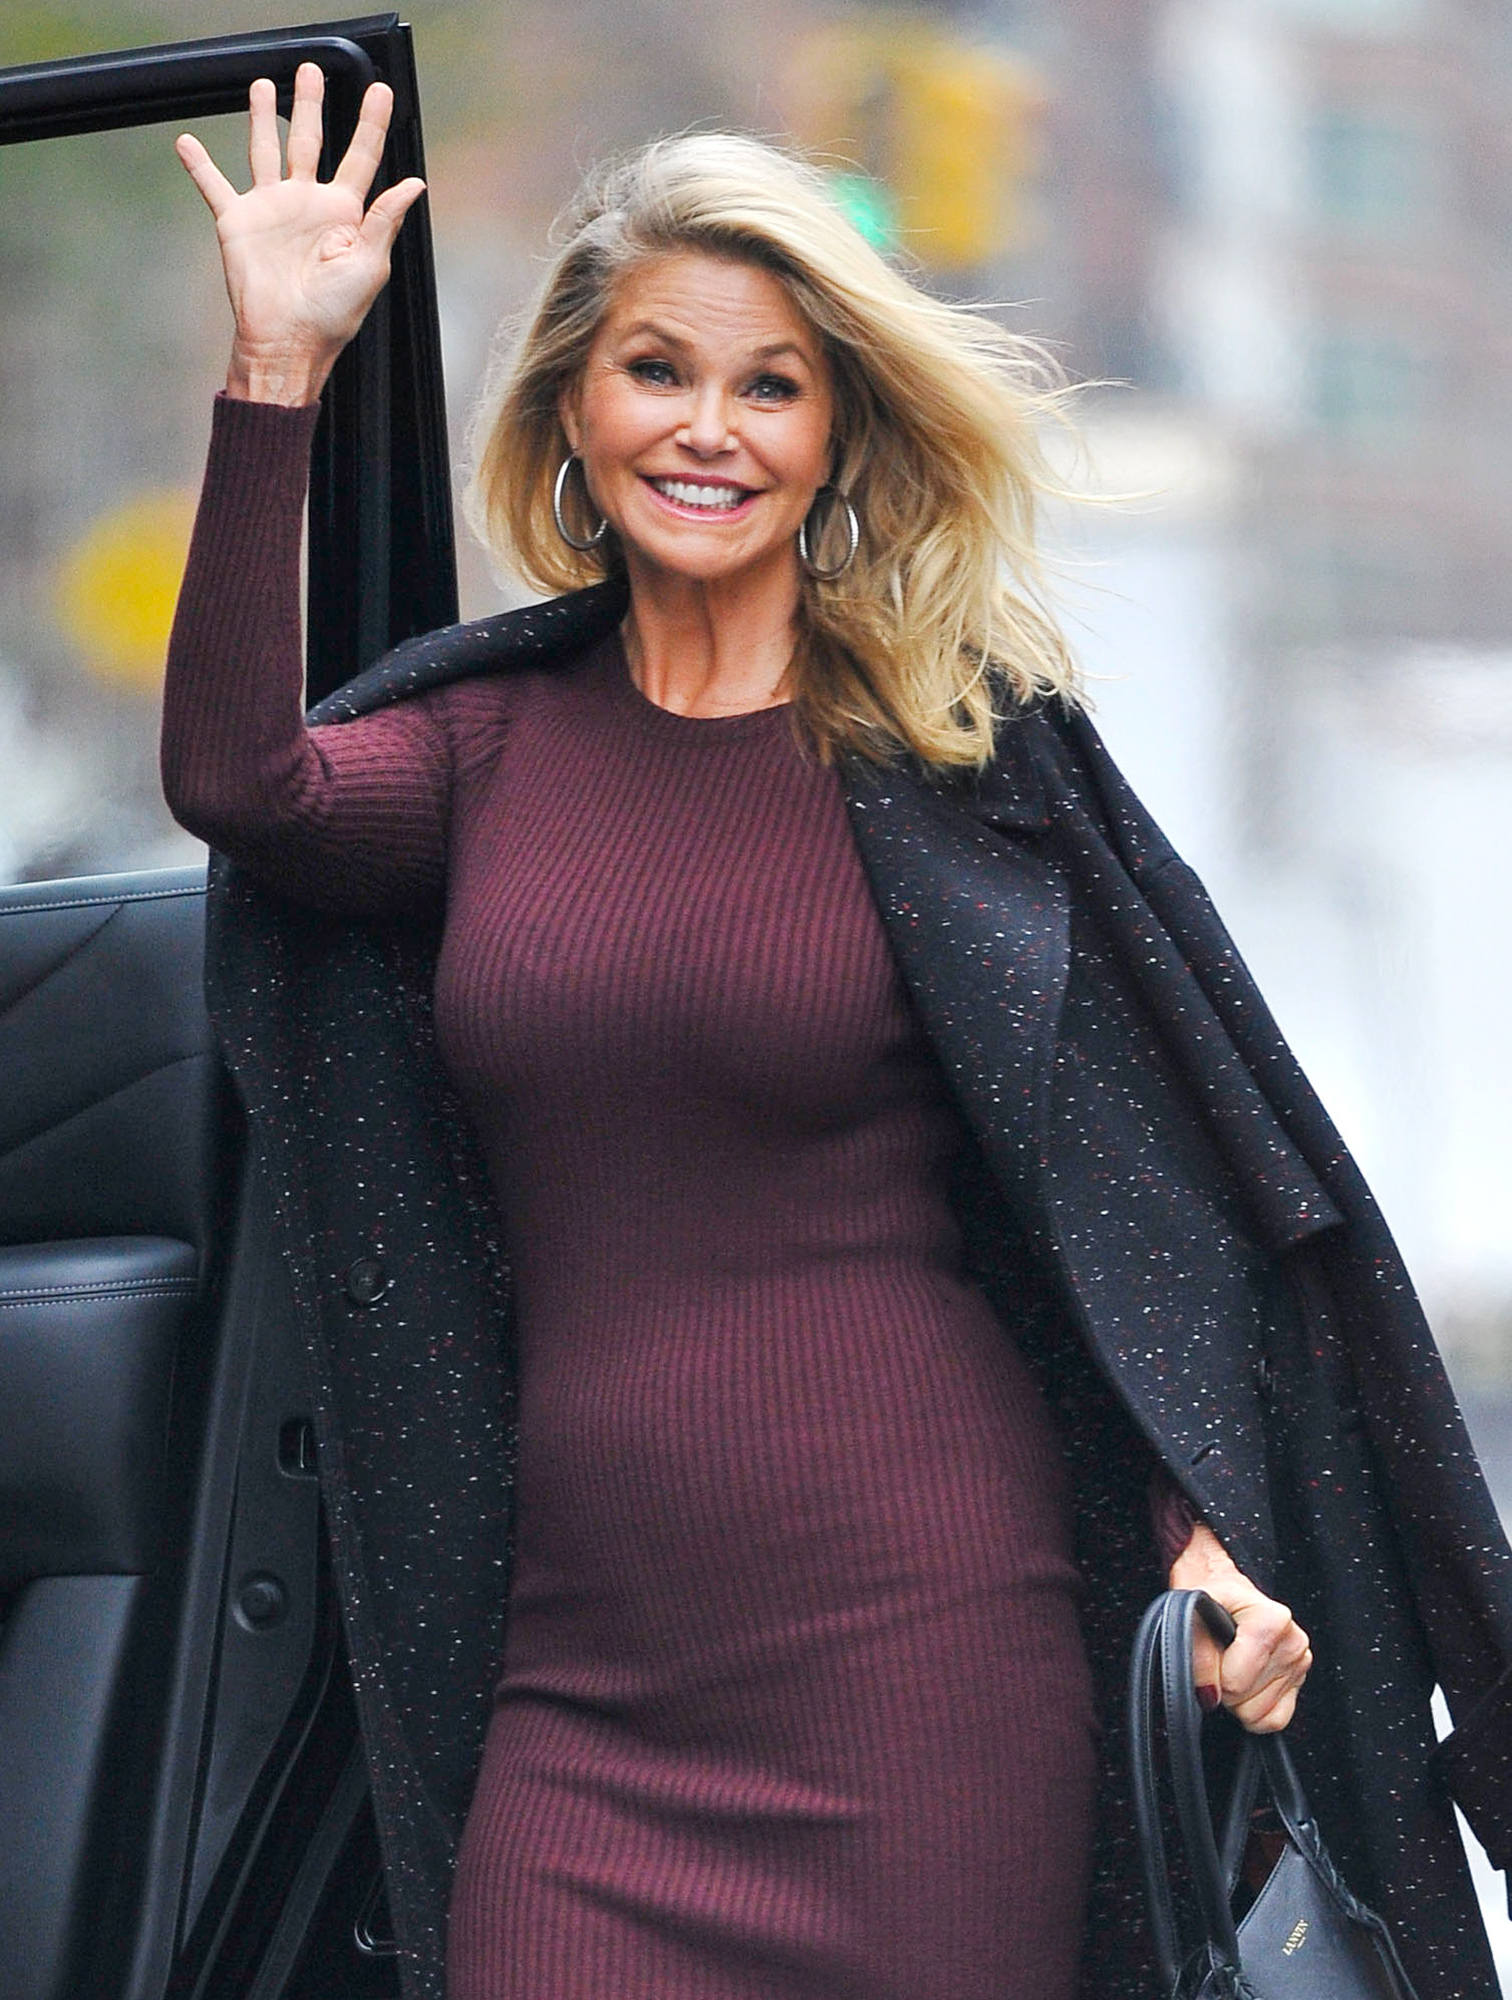 EXCLUSIVE: Christie Brinkley wears a form-fitting burgundy dress in New York City